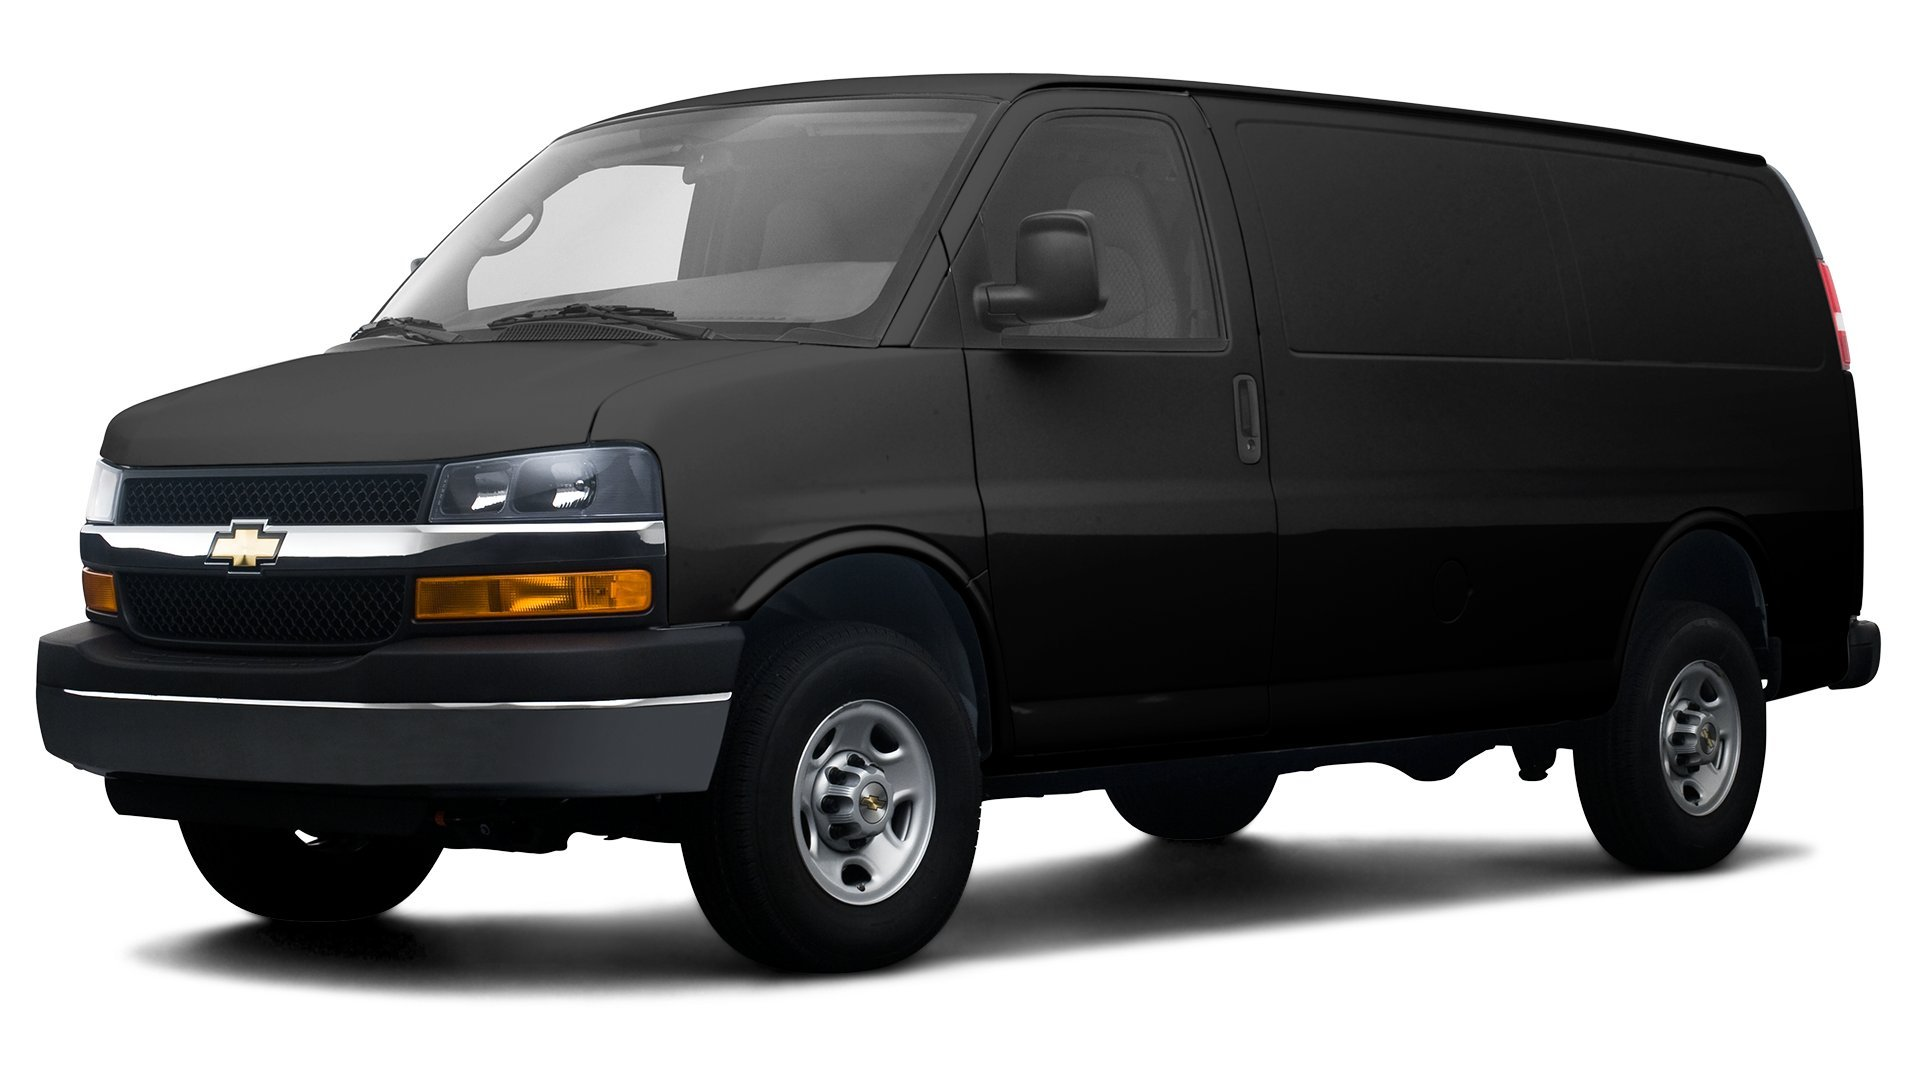 ... 2009 Chevrolet Express 1500, All Wheel Drive 1500 135""